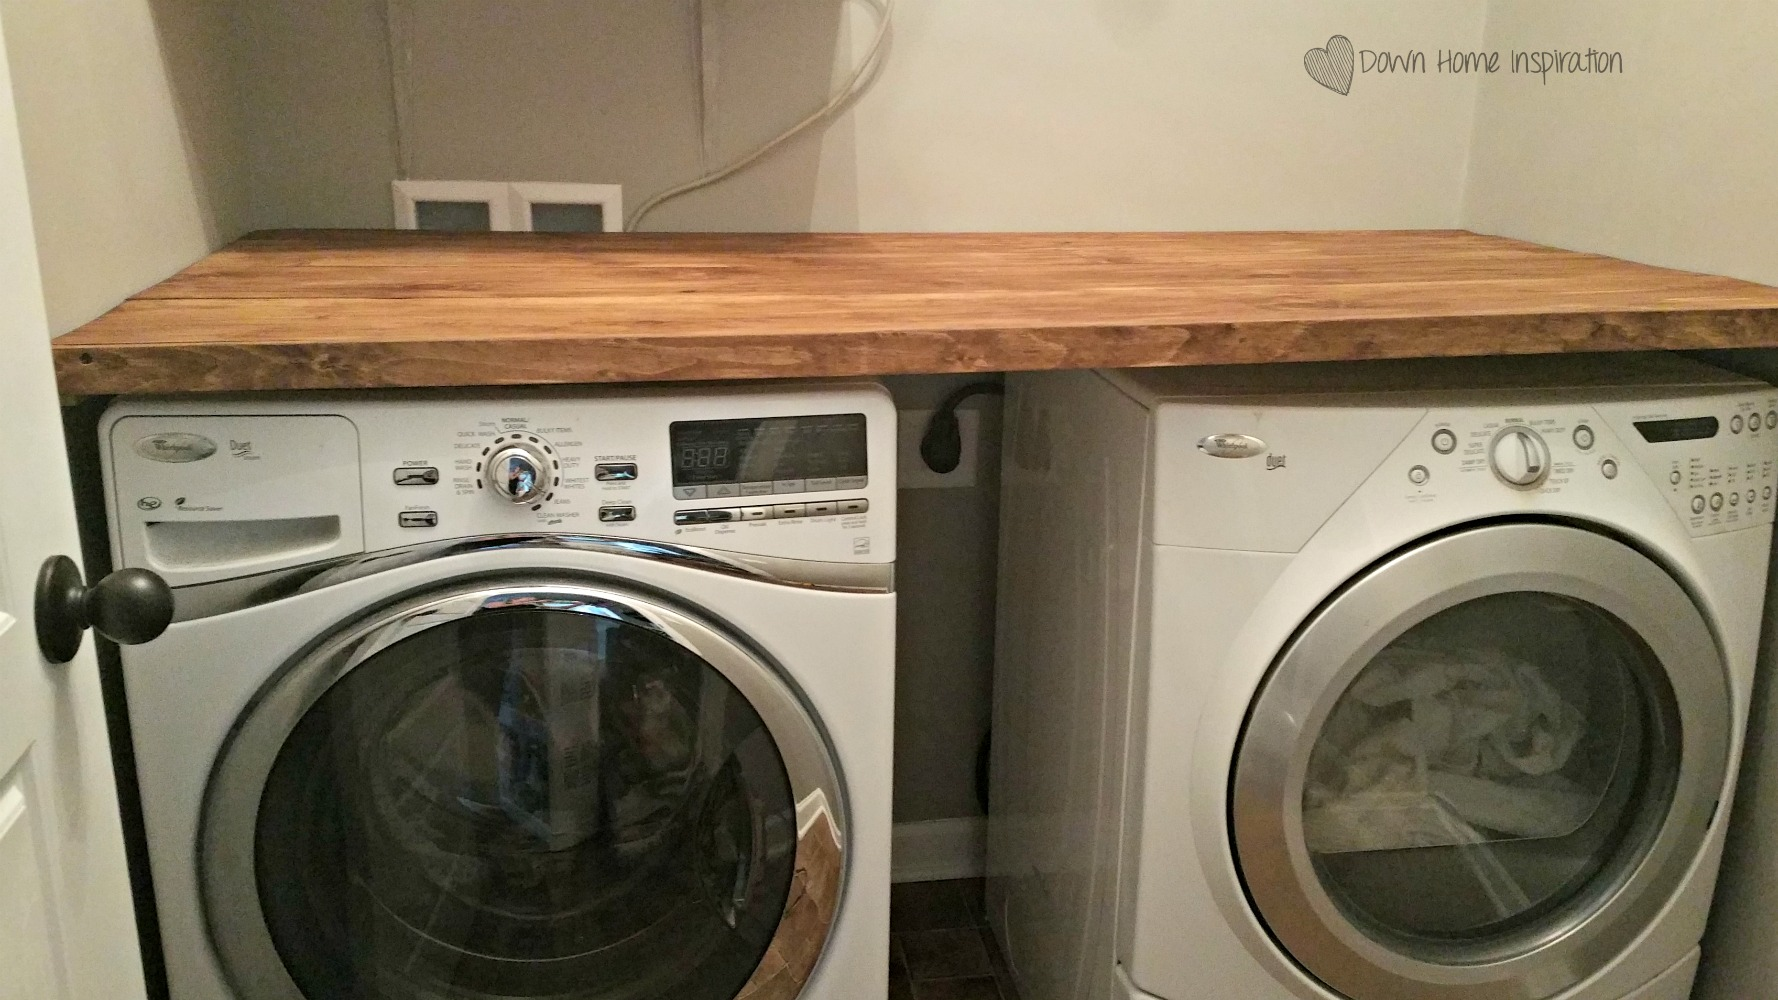 Countertop Options For Laundry Room : DIY Laundry Room Countertop for Under $40 - Down Home Inspiration